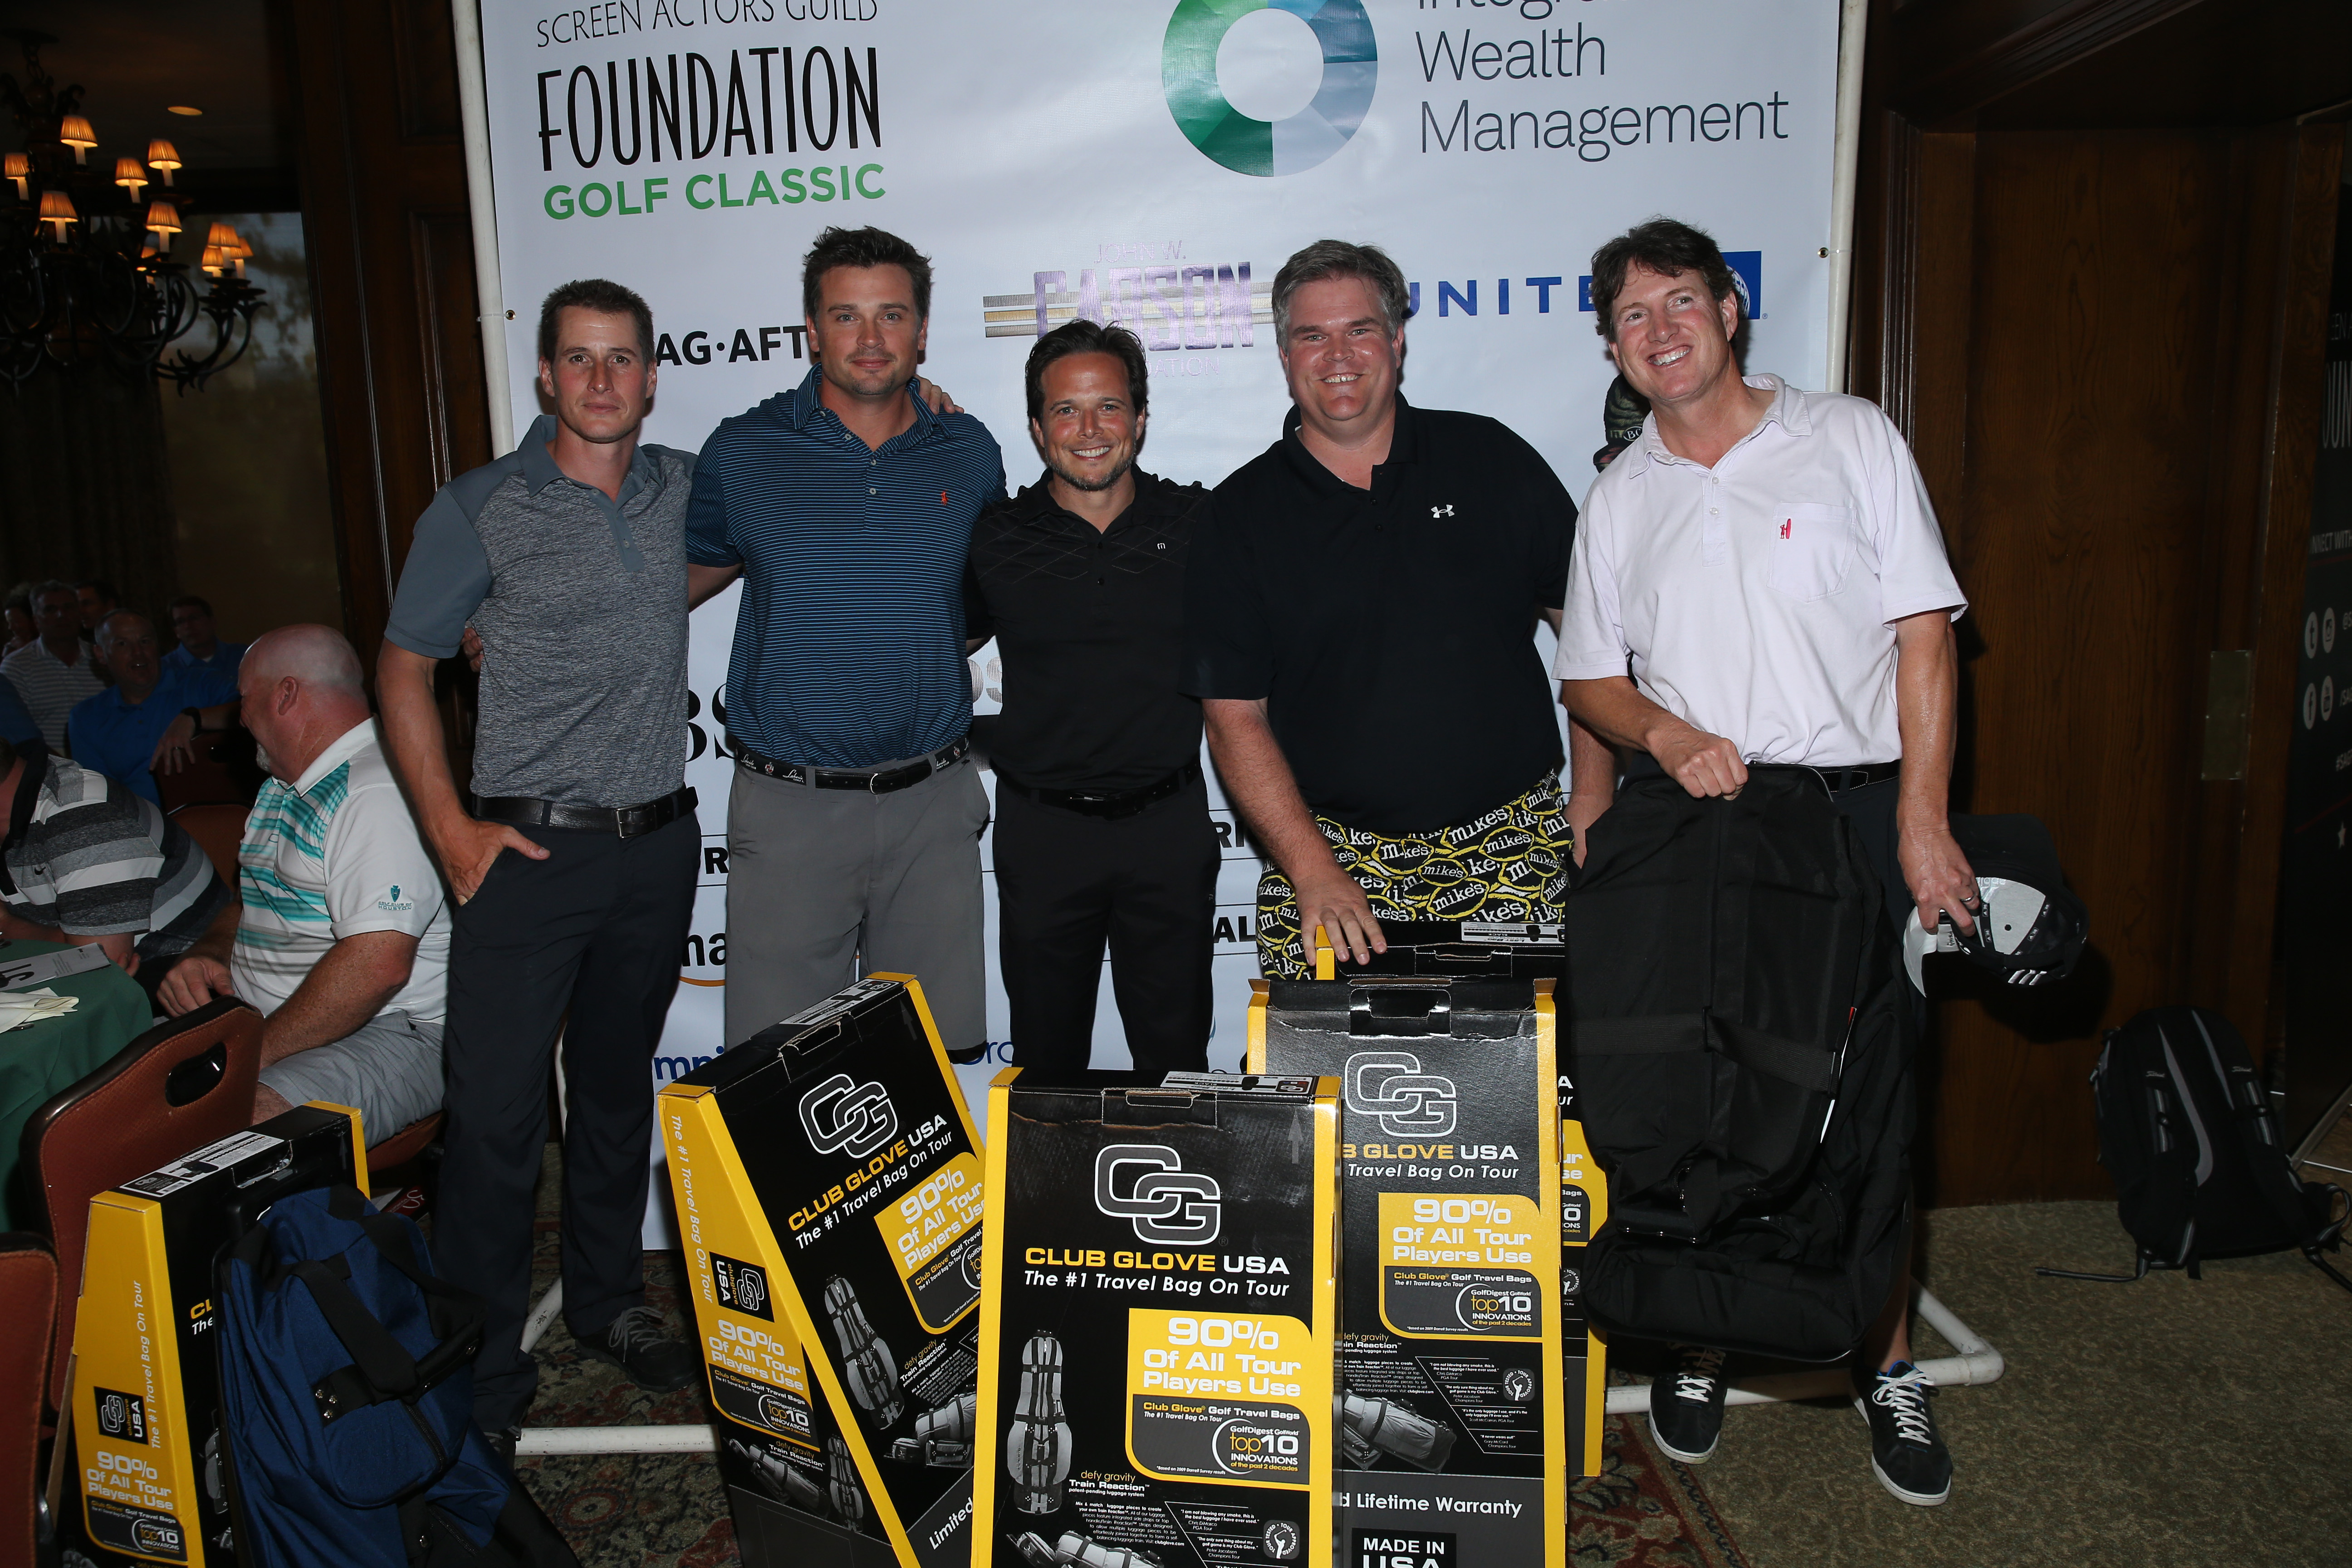 (L-R) Host Brendan Fehr, actor Tom Welling, host Scott Wolf and guests of Team John W. Carson, first place winners of the low net score, pose with prizes during The Screen Actors Guild Foundation's 6th Annual Los Angeles Golf Classic on June 8, 2015 in Burbank, California.  (Photo by Mark Davis/Getty Images for The Screen Actors Guild Foundation)